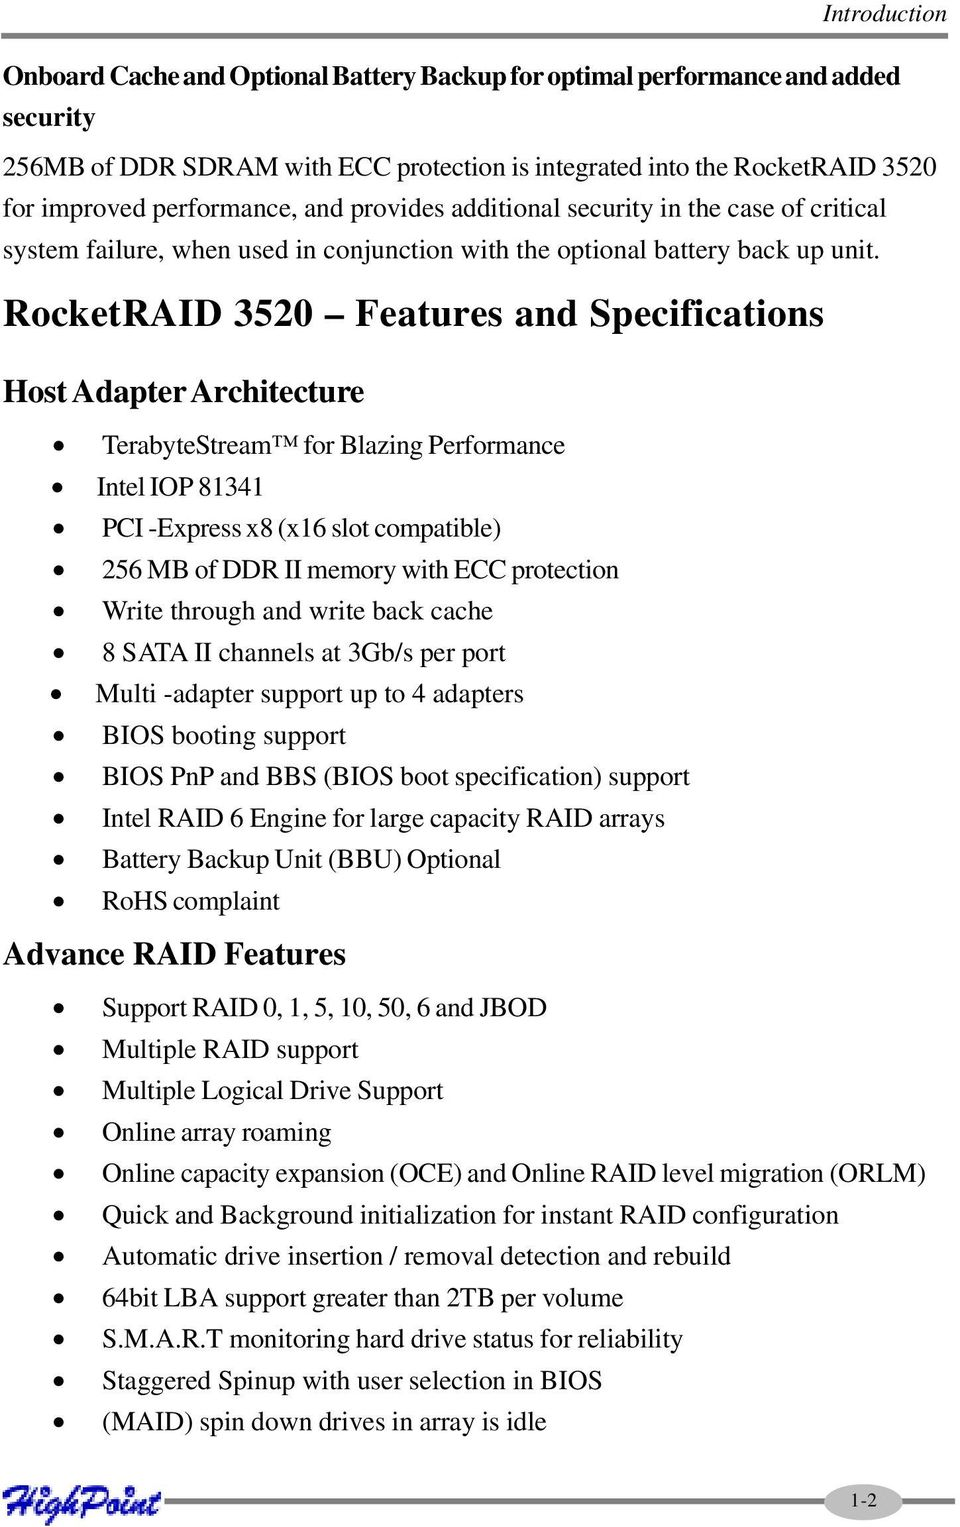 RocketRAID 3520 Features and Specifications Host Adapter Architecture TerabyteStream for Blazing Performance Intel IOP 81341 PCI -Express x8 (x16 slot compatible) 256 MB of DDR II memory with ECC